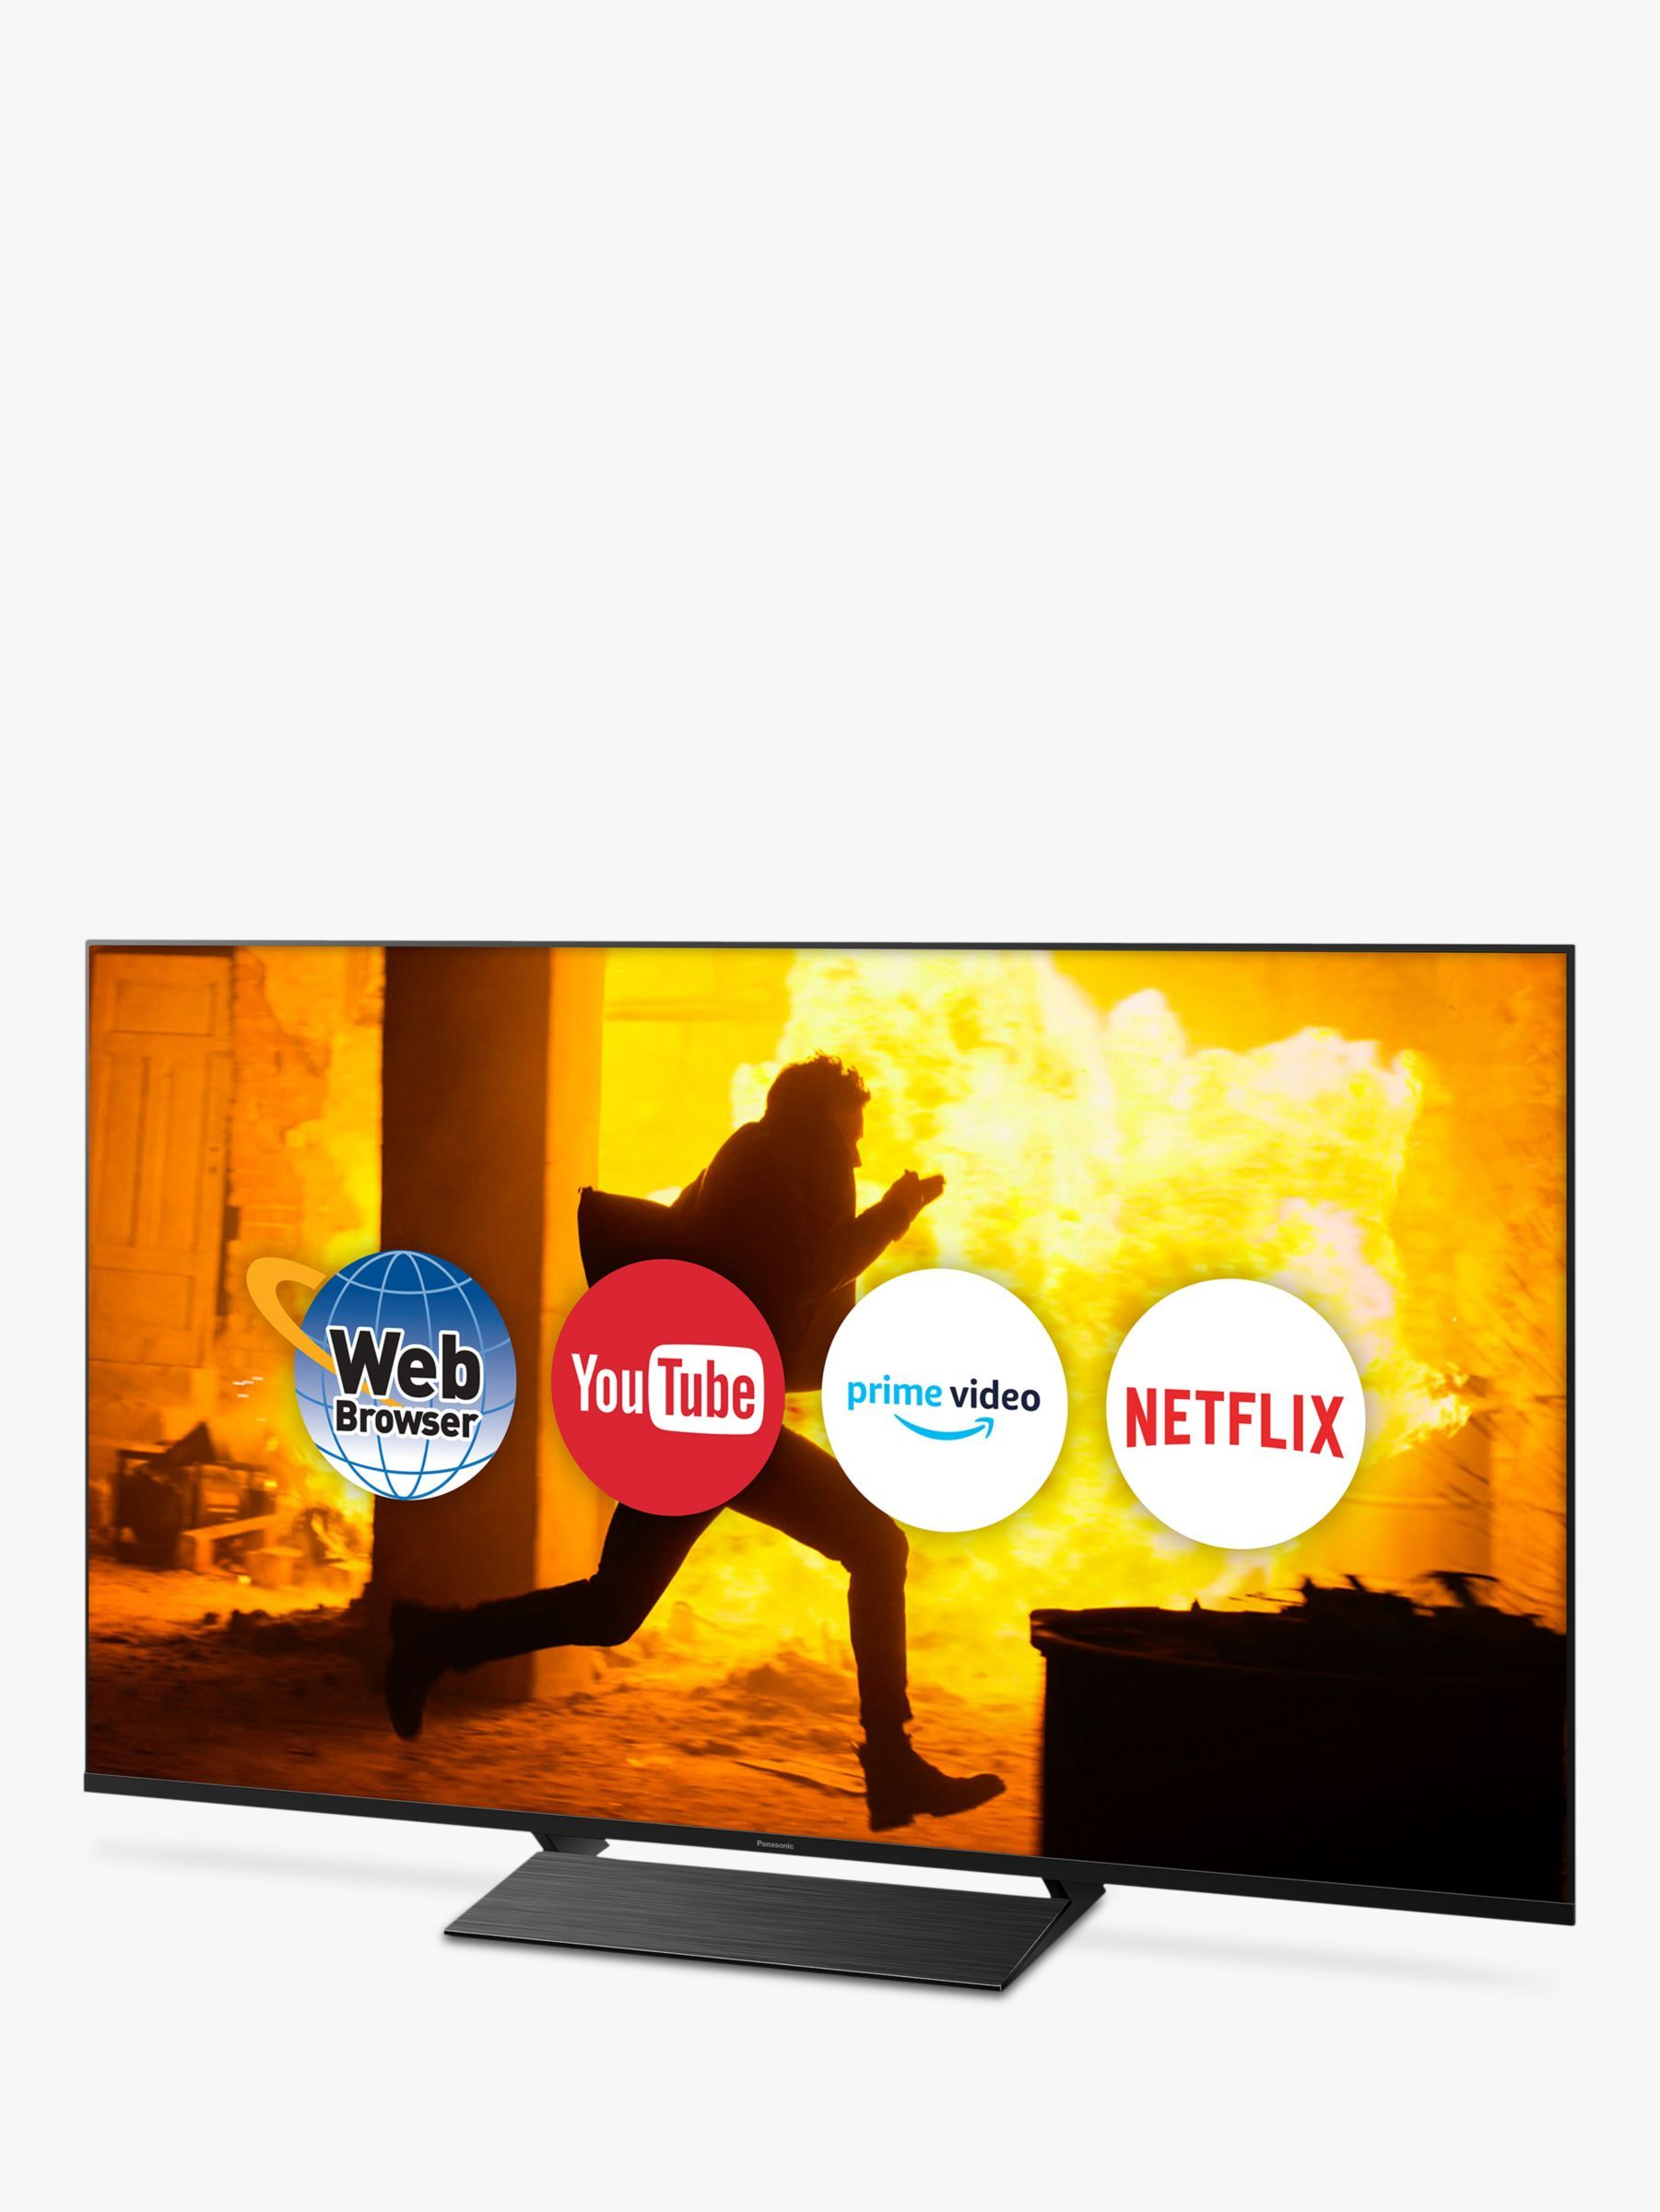 Panasonic Tx 65gx800b 2019 Led Hdr 4k Ultra Hd Smart Tv 65 With Freeview Play Graphite Black Dolby Atmos Smart Tv Panasonic Tvs